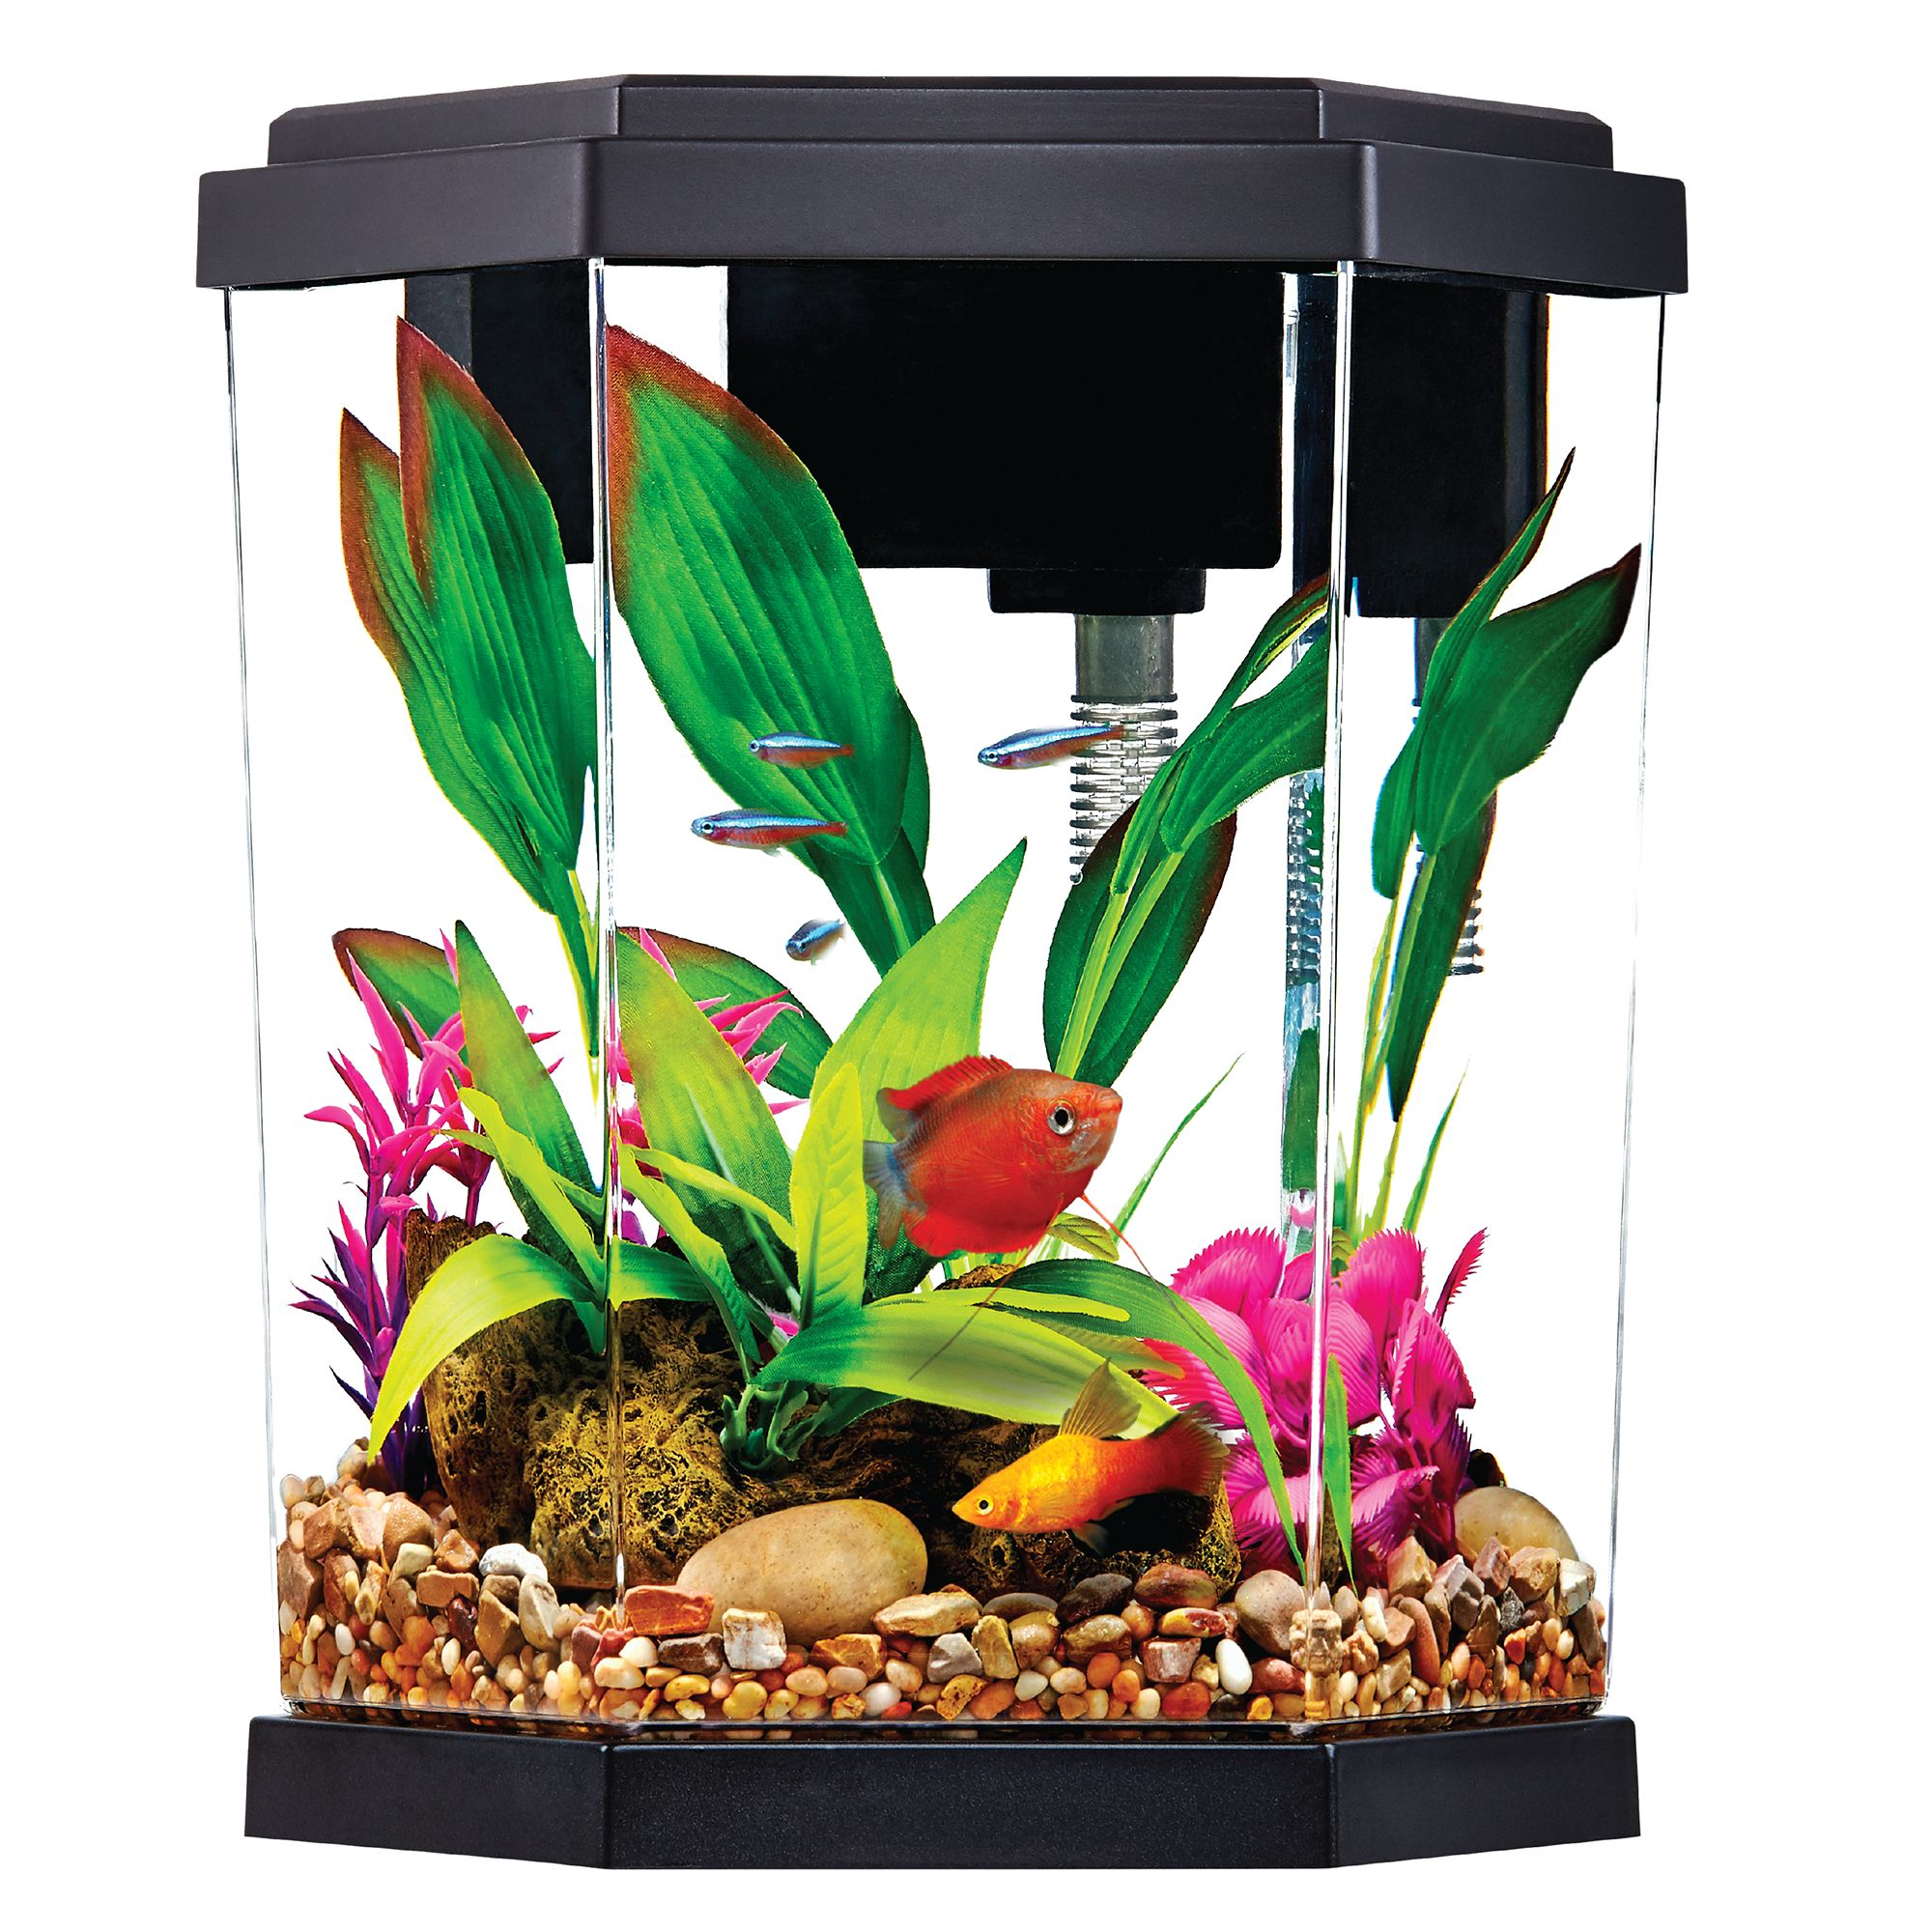 Marina deluxe aquarium kit size 20 gallons for 20 gallon fish tank size